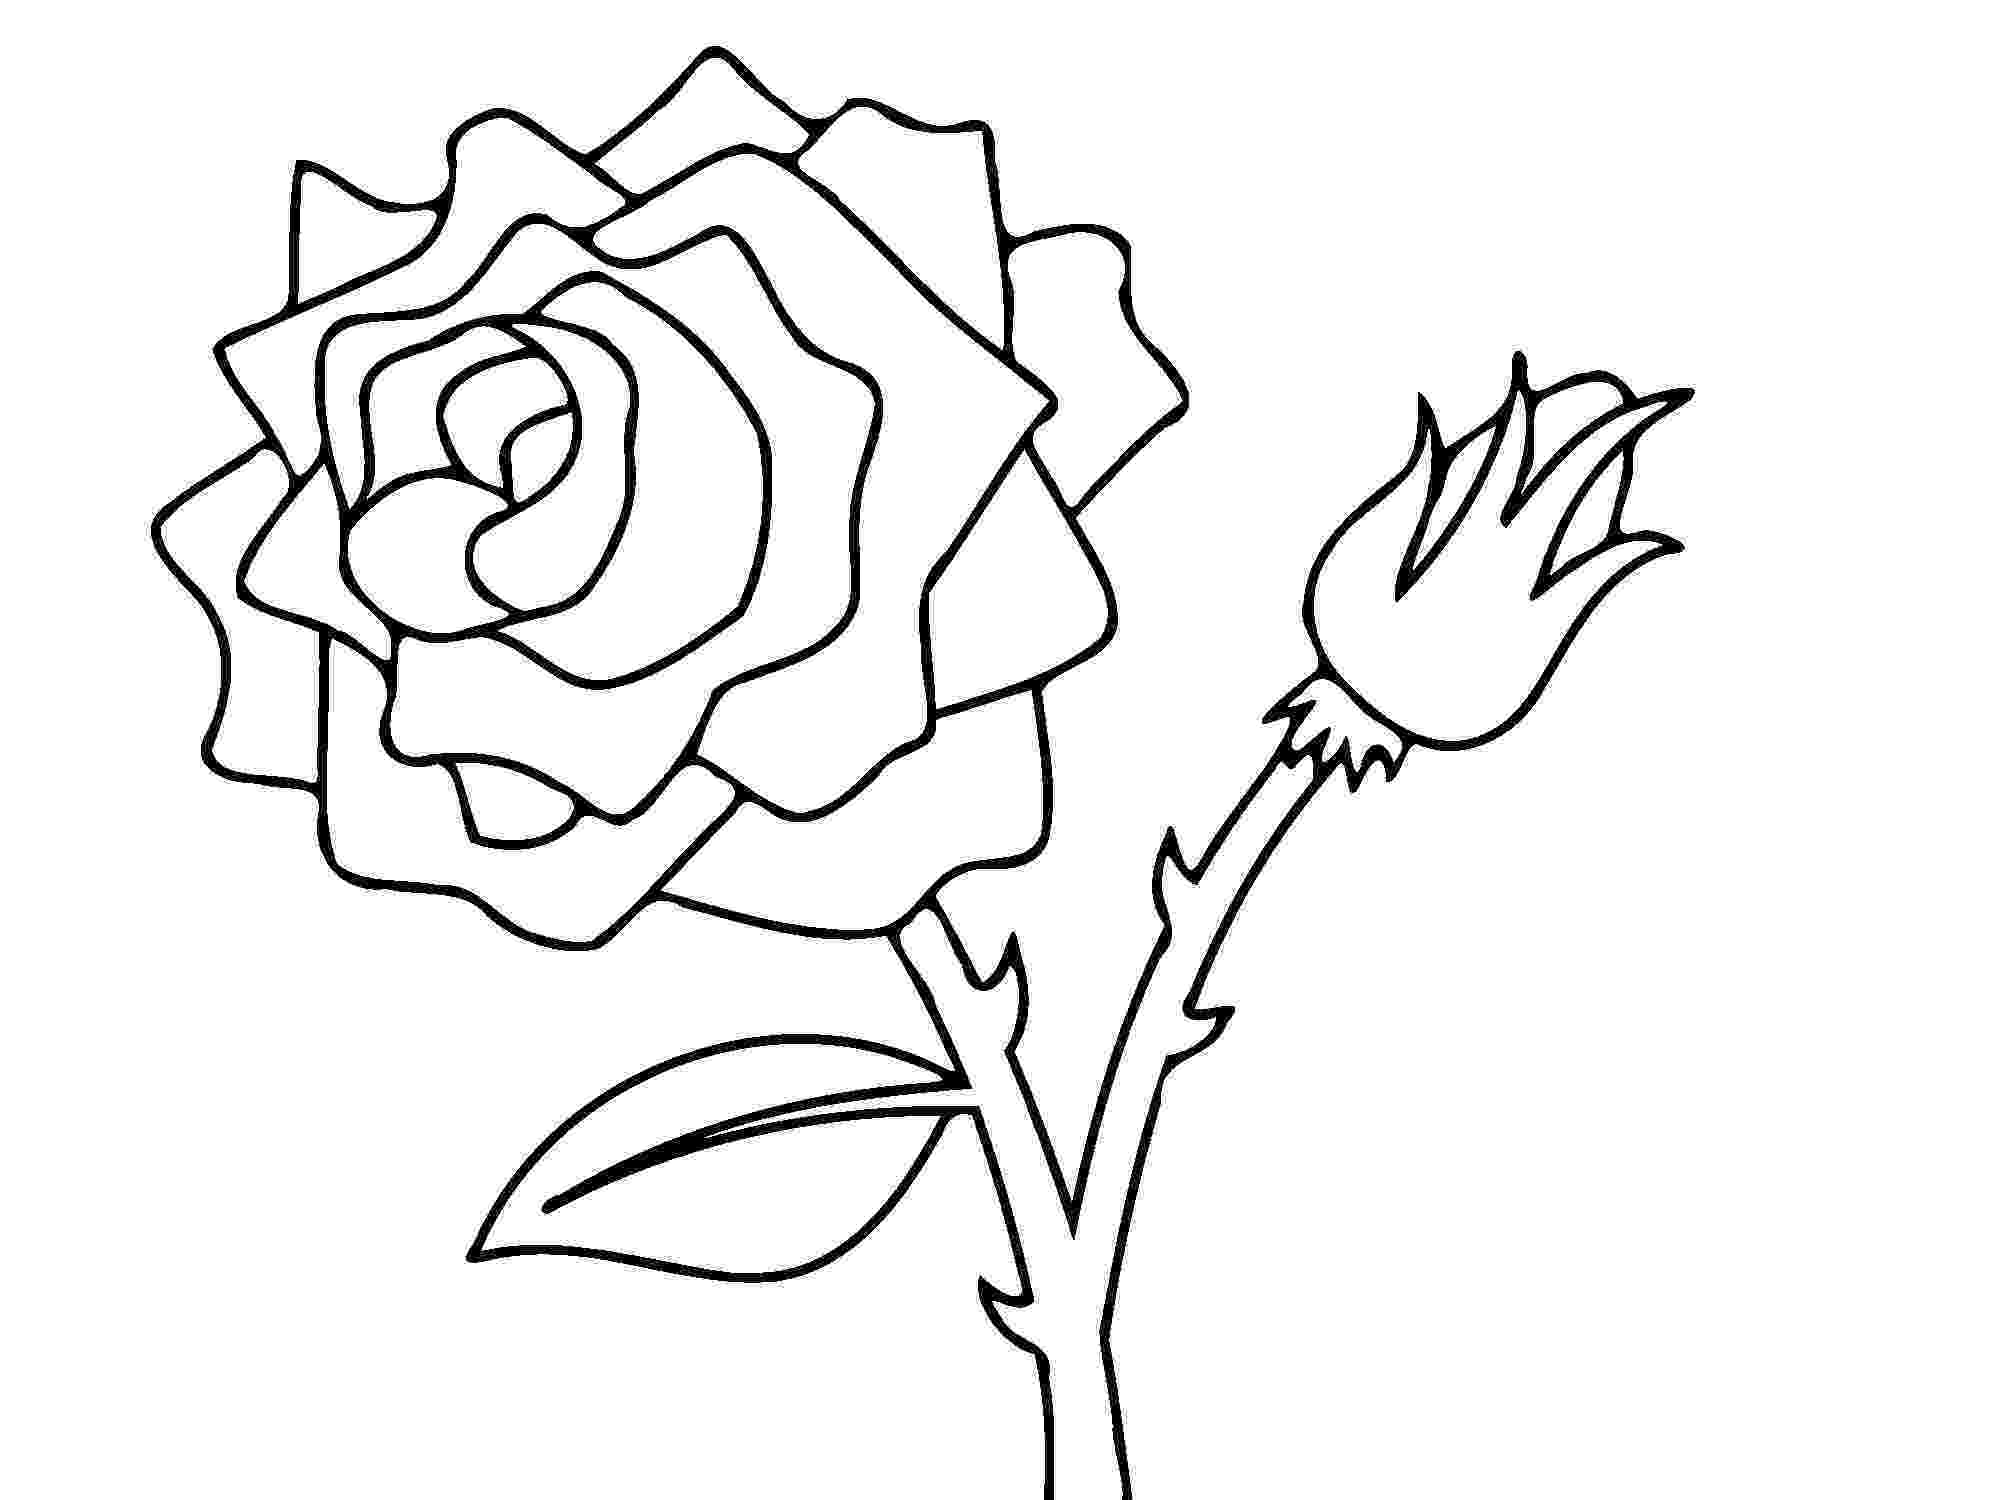 roses coloring pictures free printable roses coloring pages for kids roses coloring pictures 1 1